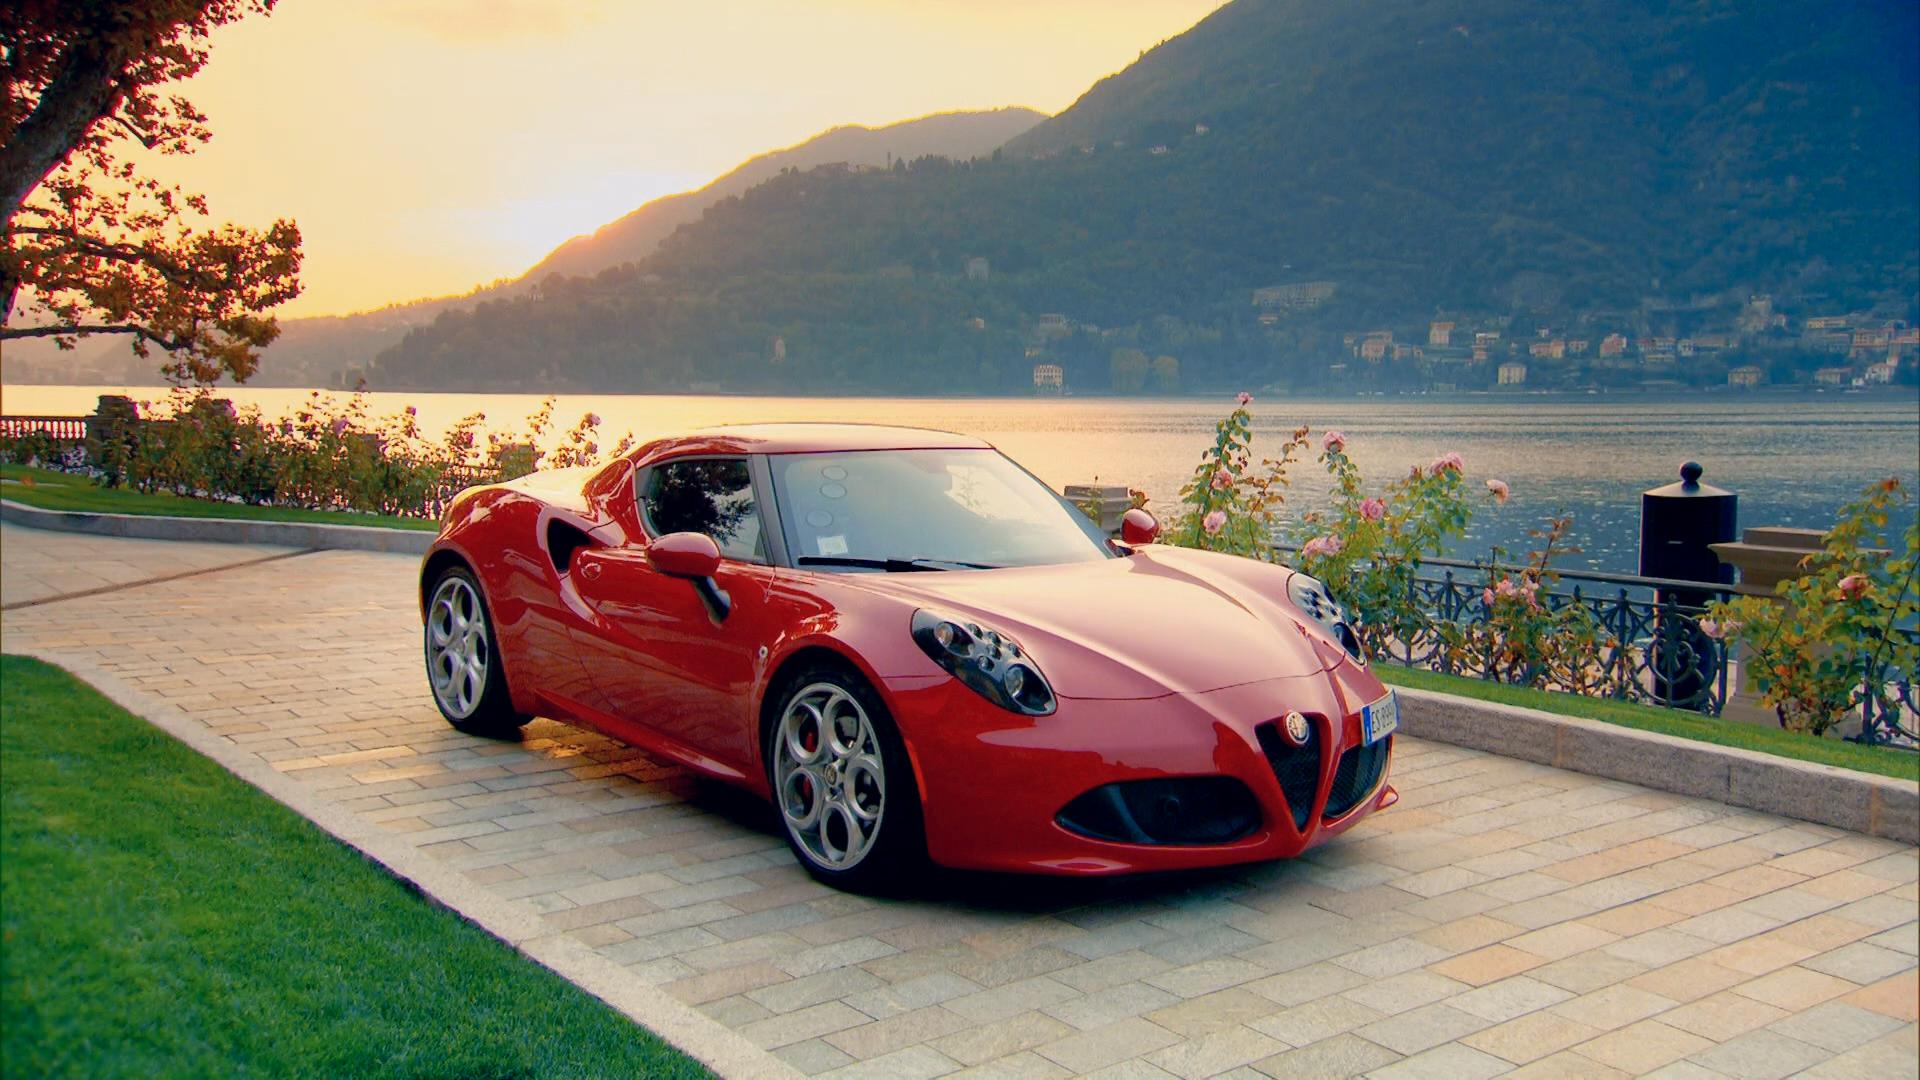 The 4C has the looks, the power and the badge, it's just a shame its chassis isn't quite up to the task